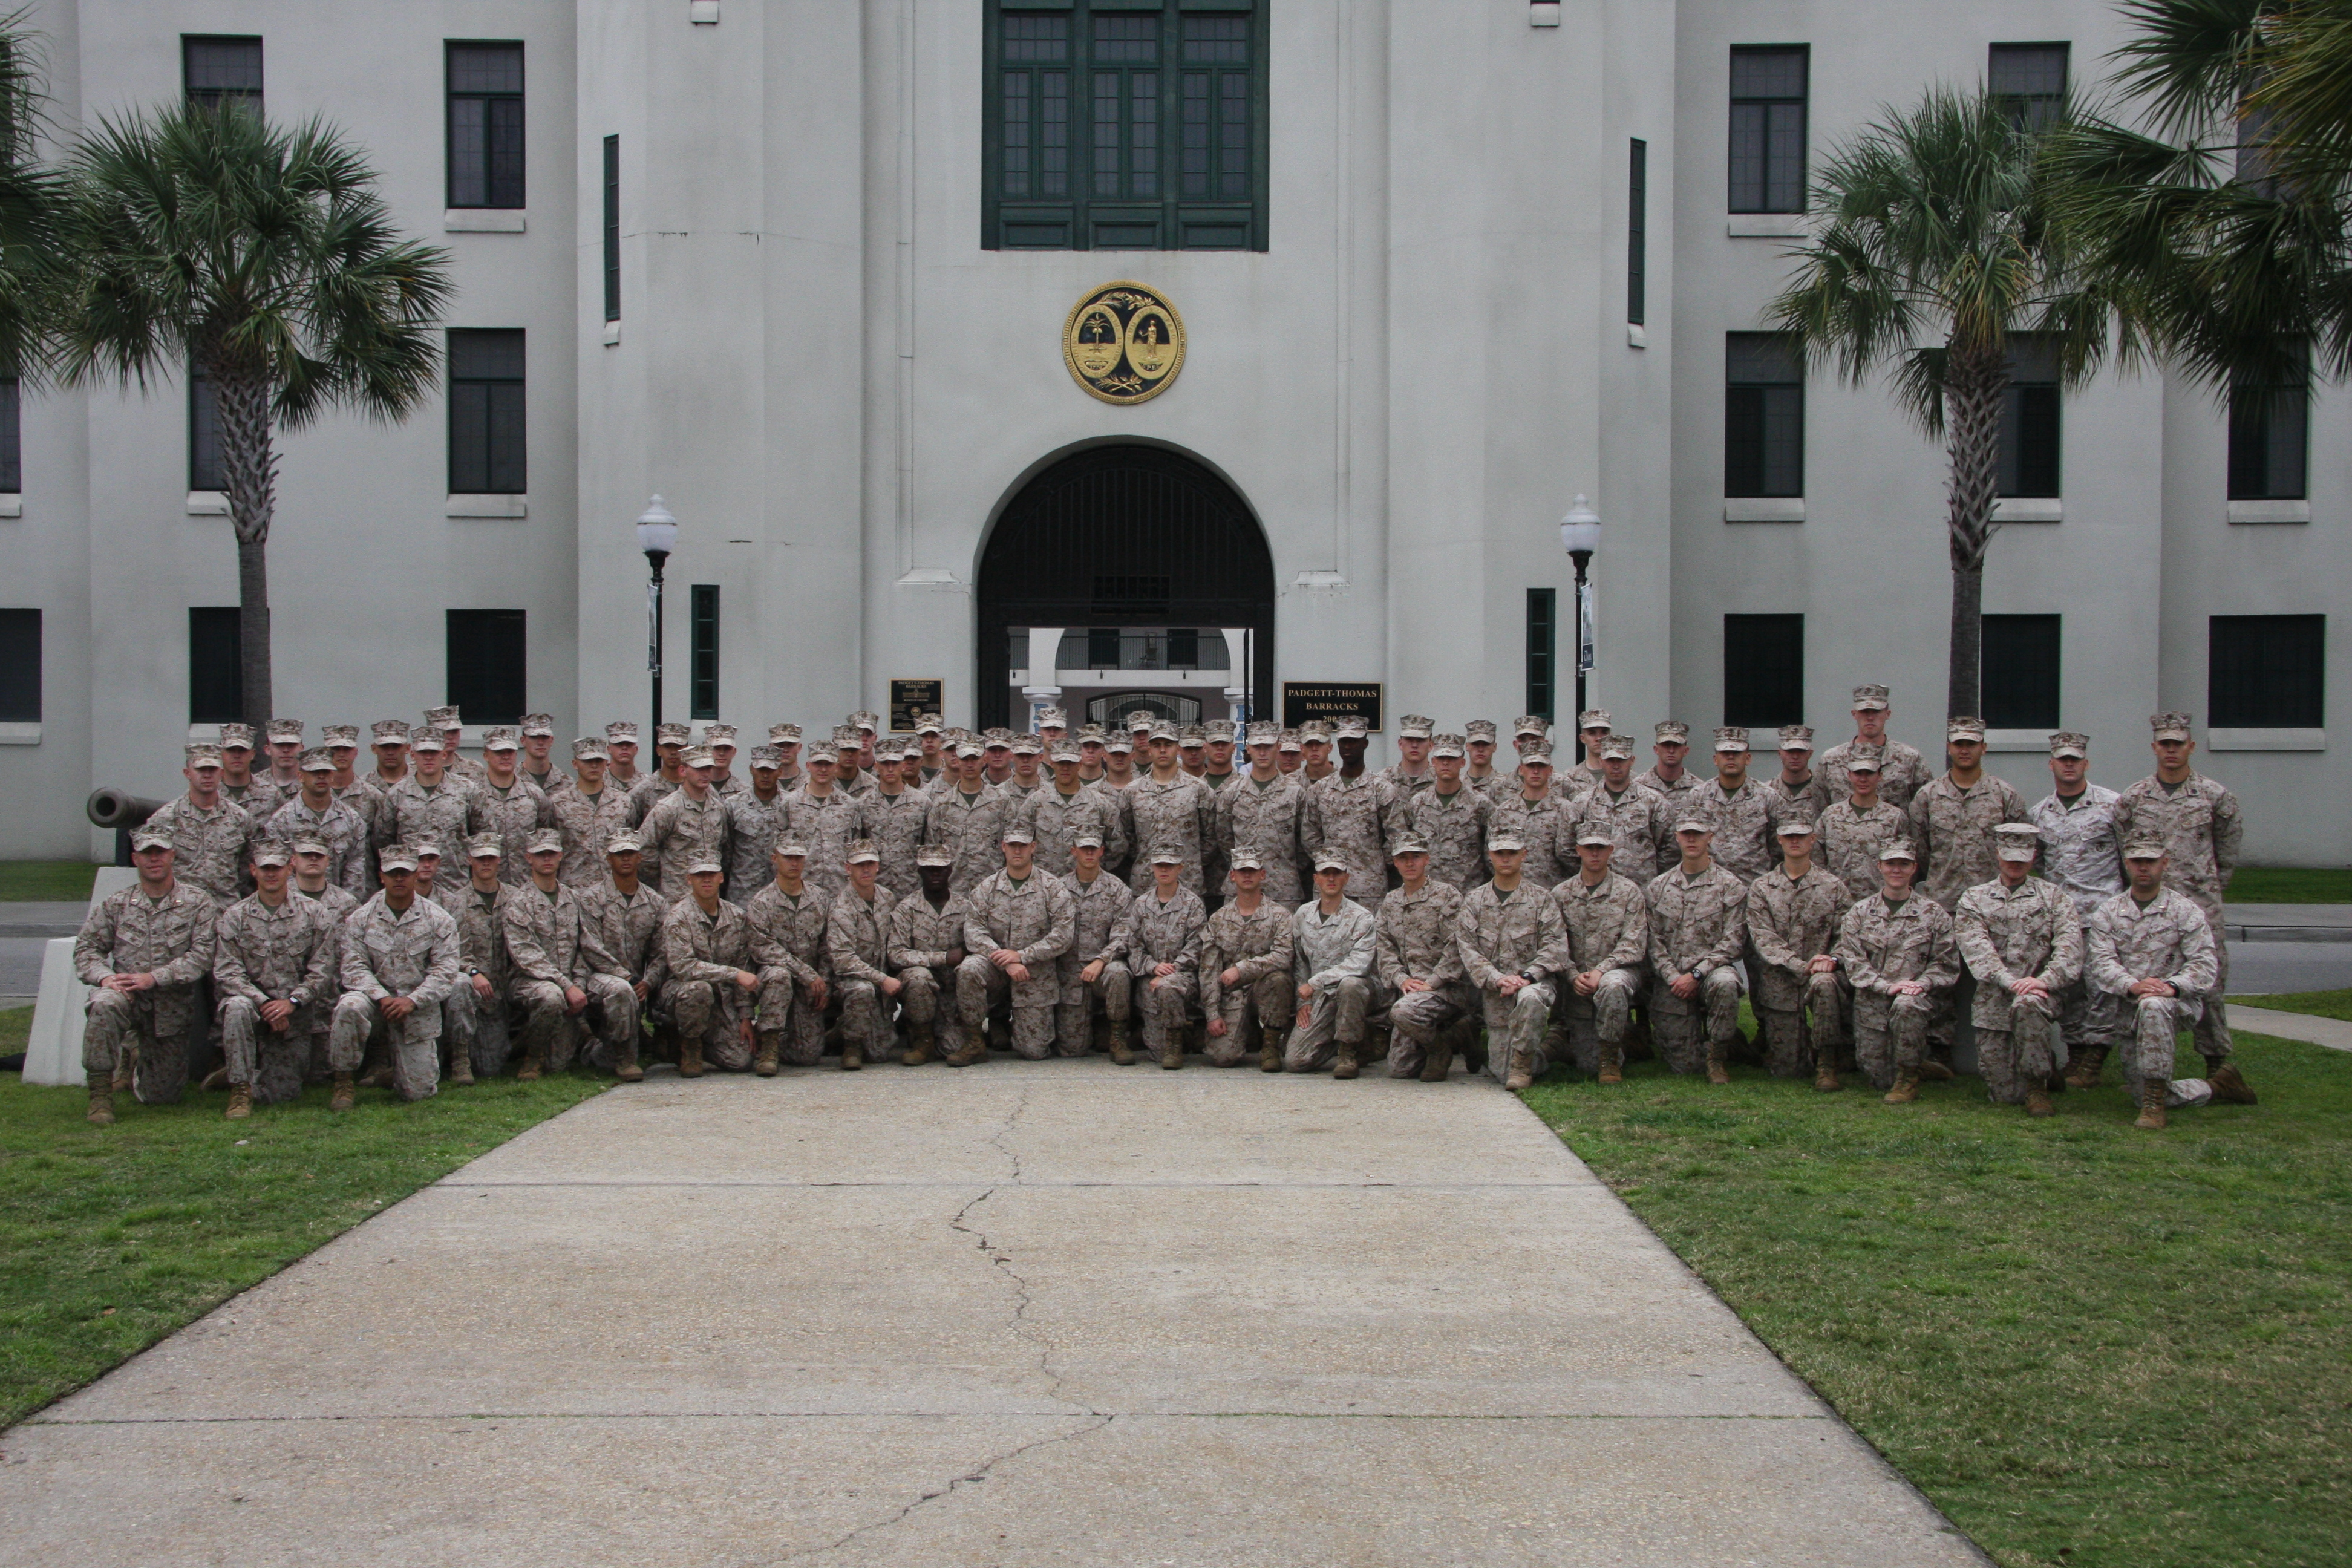 the marine corps directives system study Health system suited to its mission, culture, and organizational structures indeed, because responsibility for the delivery of health care is shared between the navy and the marine corps, any efforts to implement changes to existing.